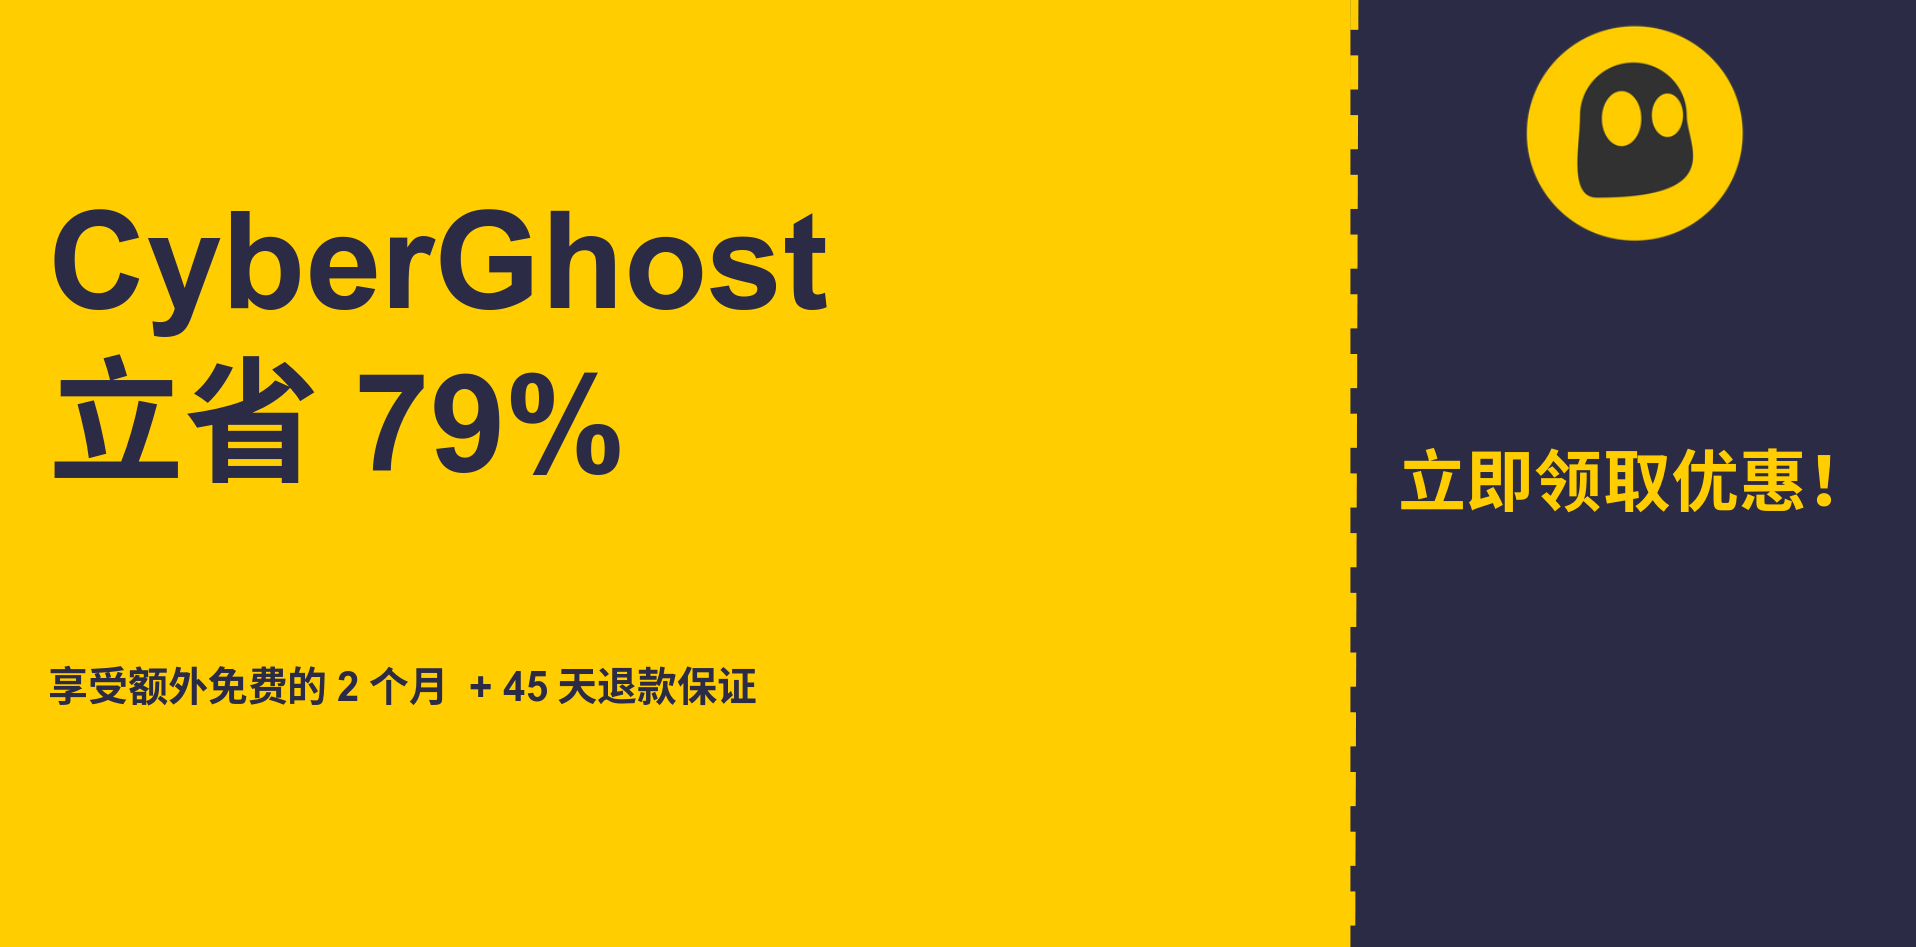 graphic of cyberghostvpn main coupon banner showing 79% off